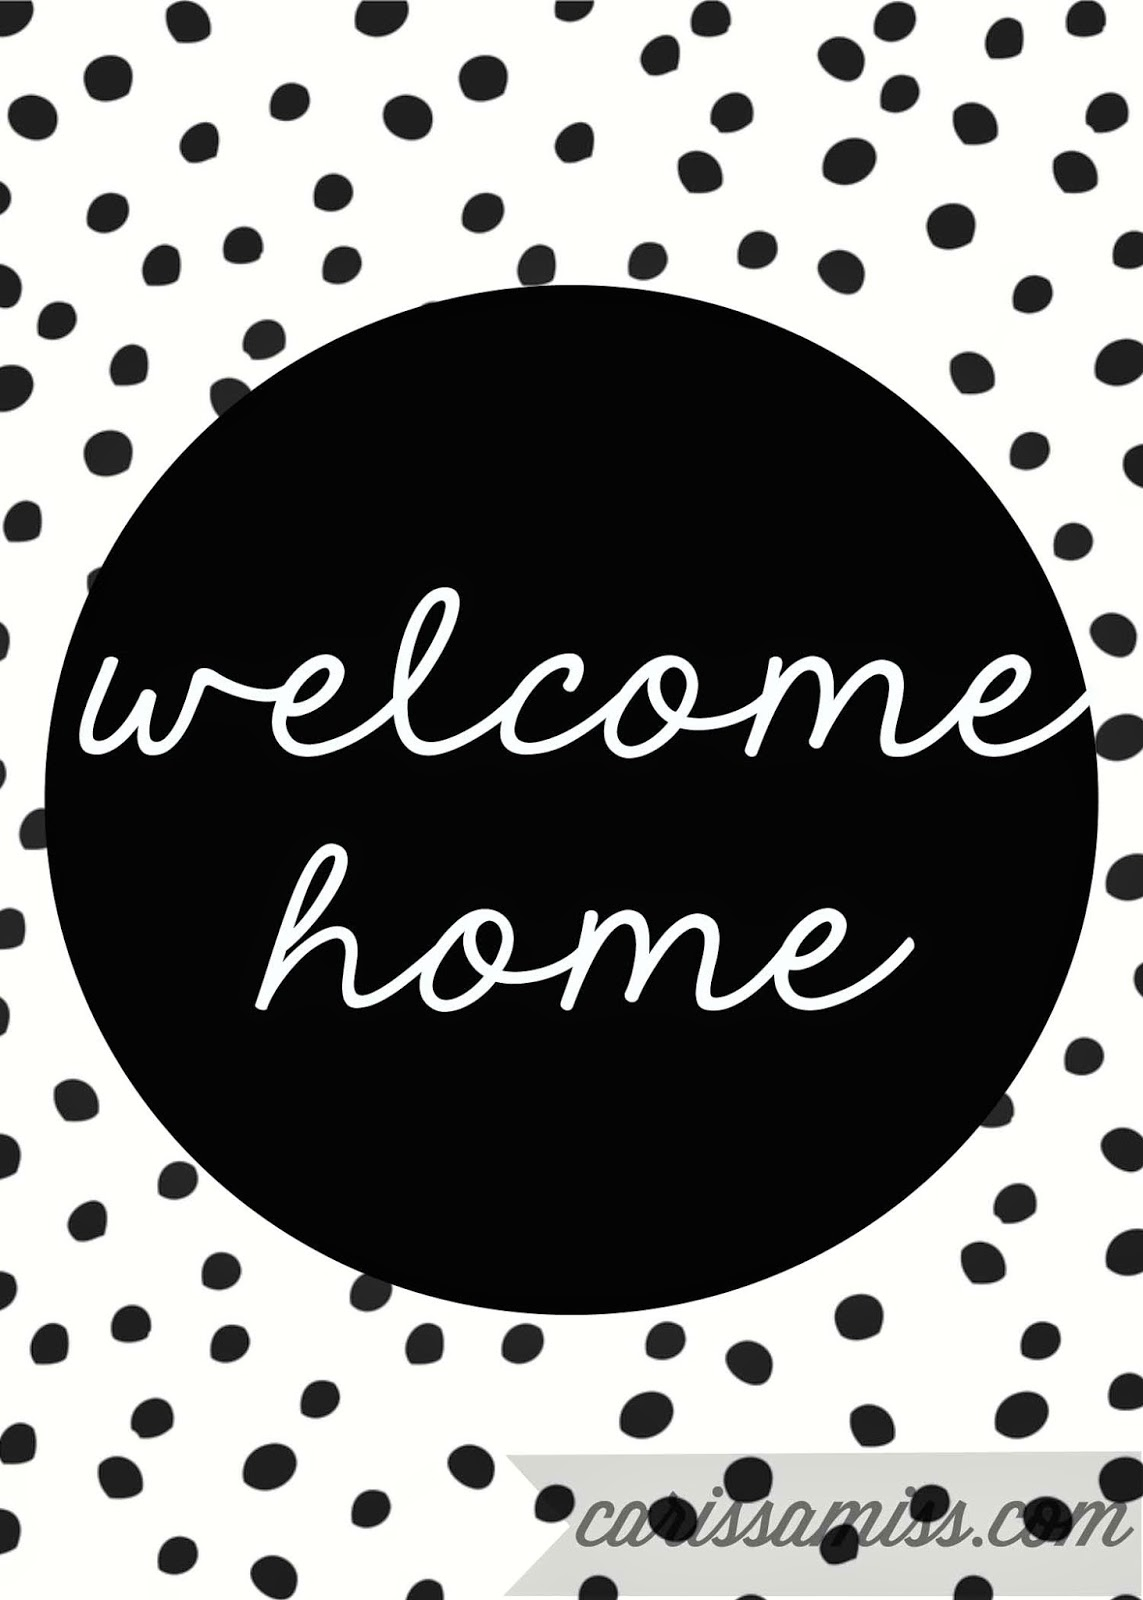 Welcome Home Printable carissamiss.com